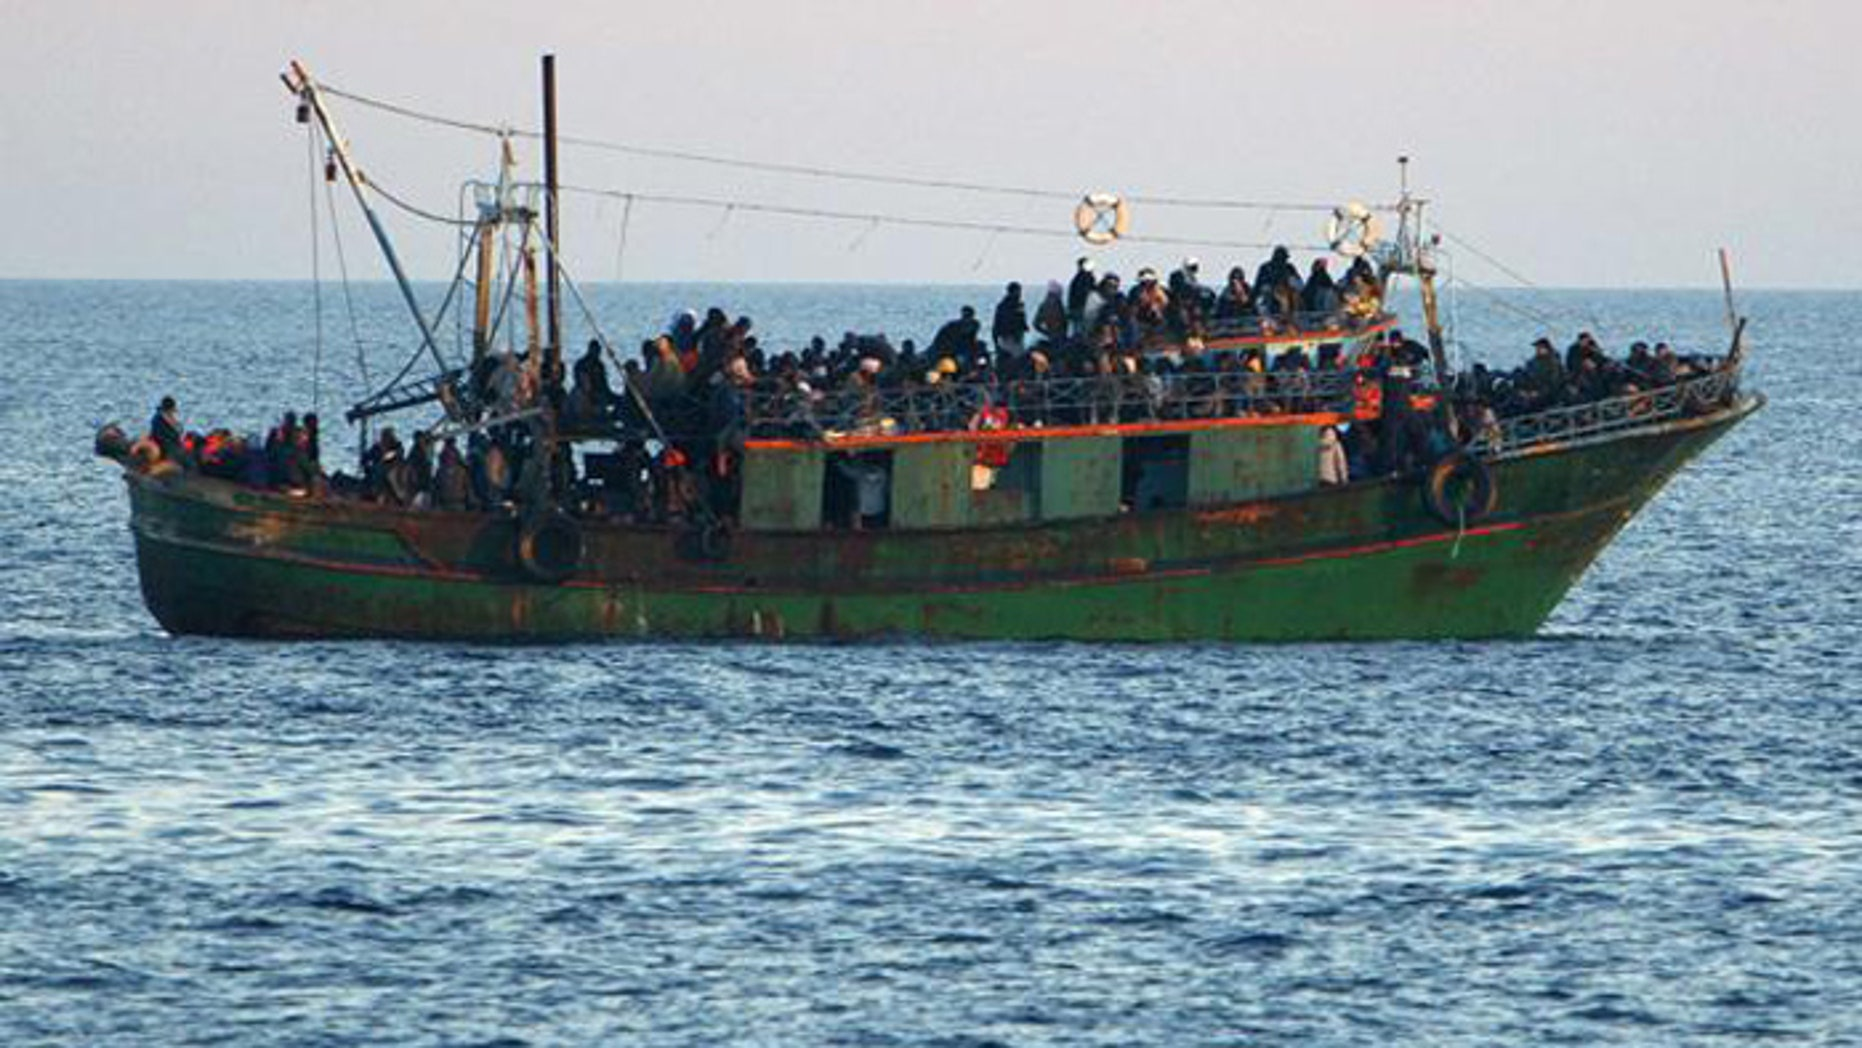 The UN hopes a resettlement plan will stem the tide of refugees crossing the Mediterranean aboard dangerous boats. (Reuters)